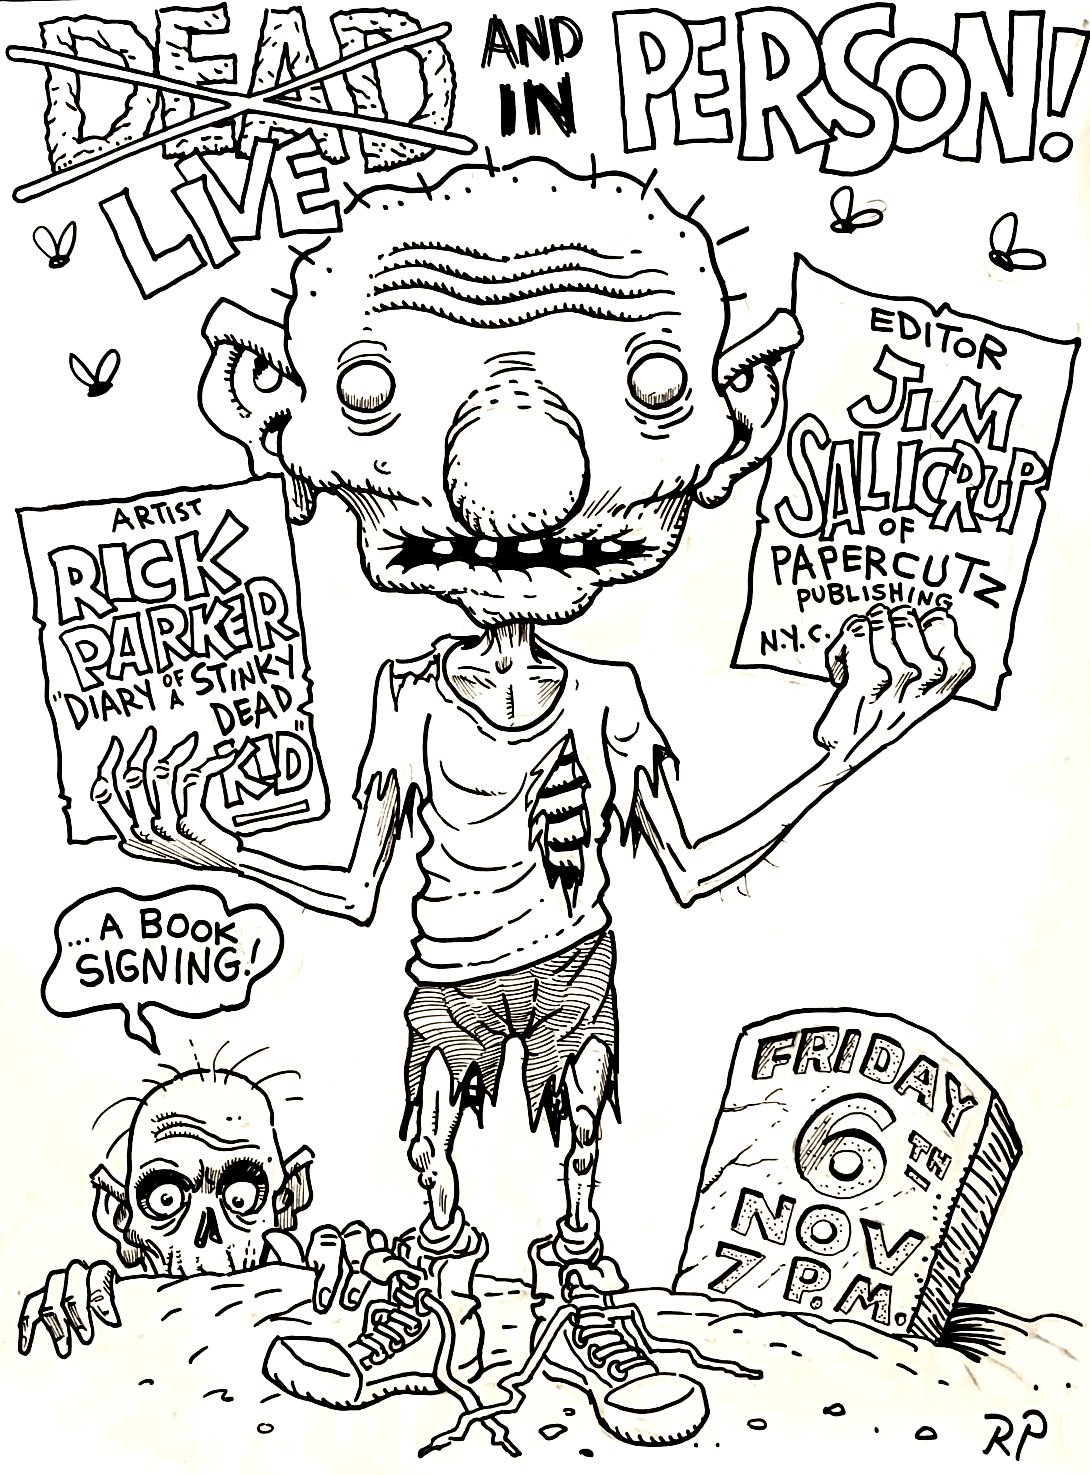 Deadboy & Zombie HugeComic Convention Poster Art